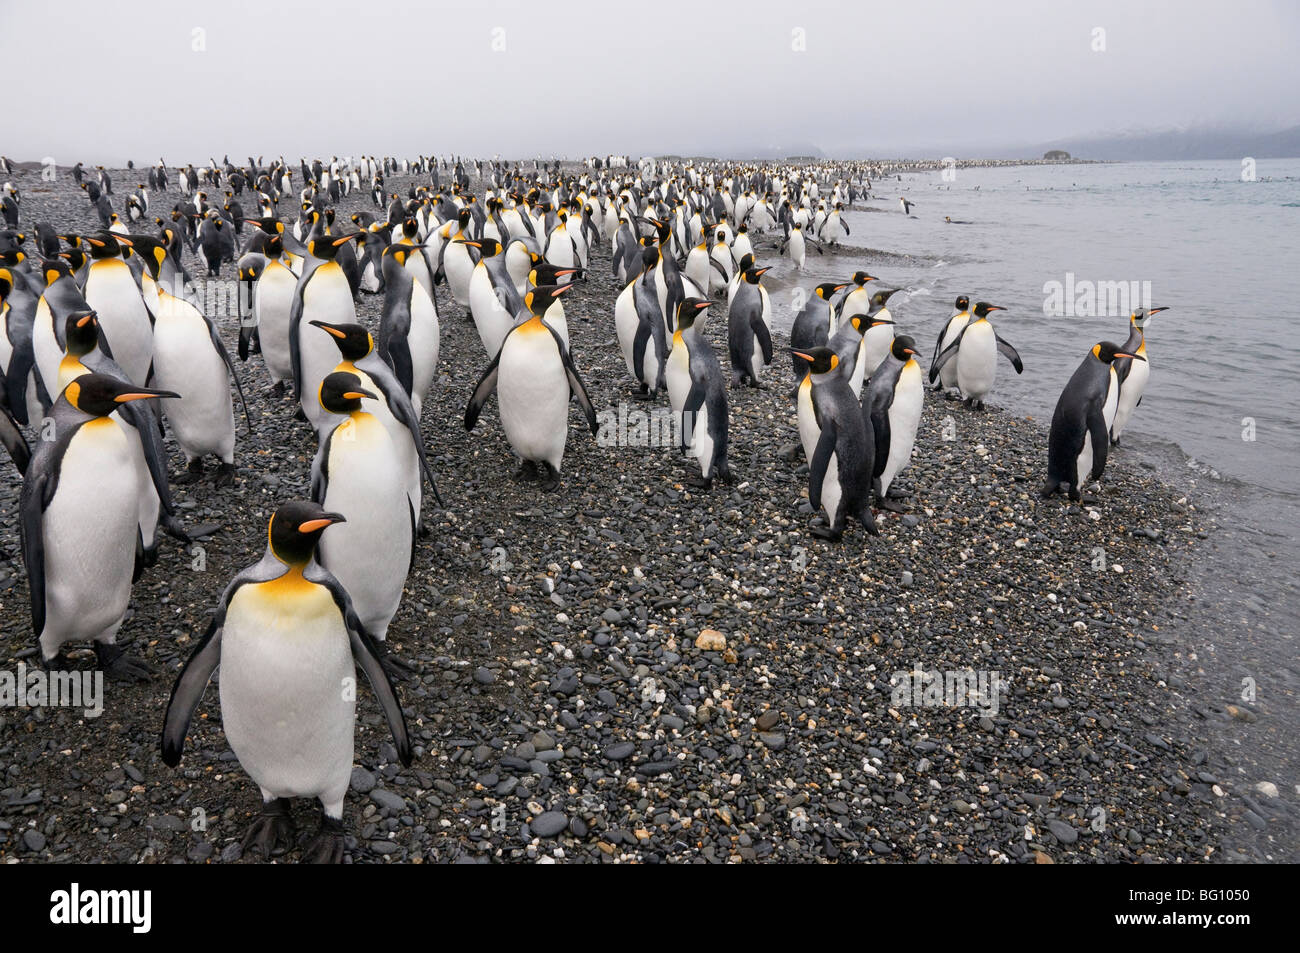 King penguins, Salisbury Plain, South Georgia, South Atlantic - Stock Image